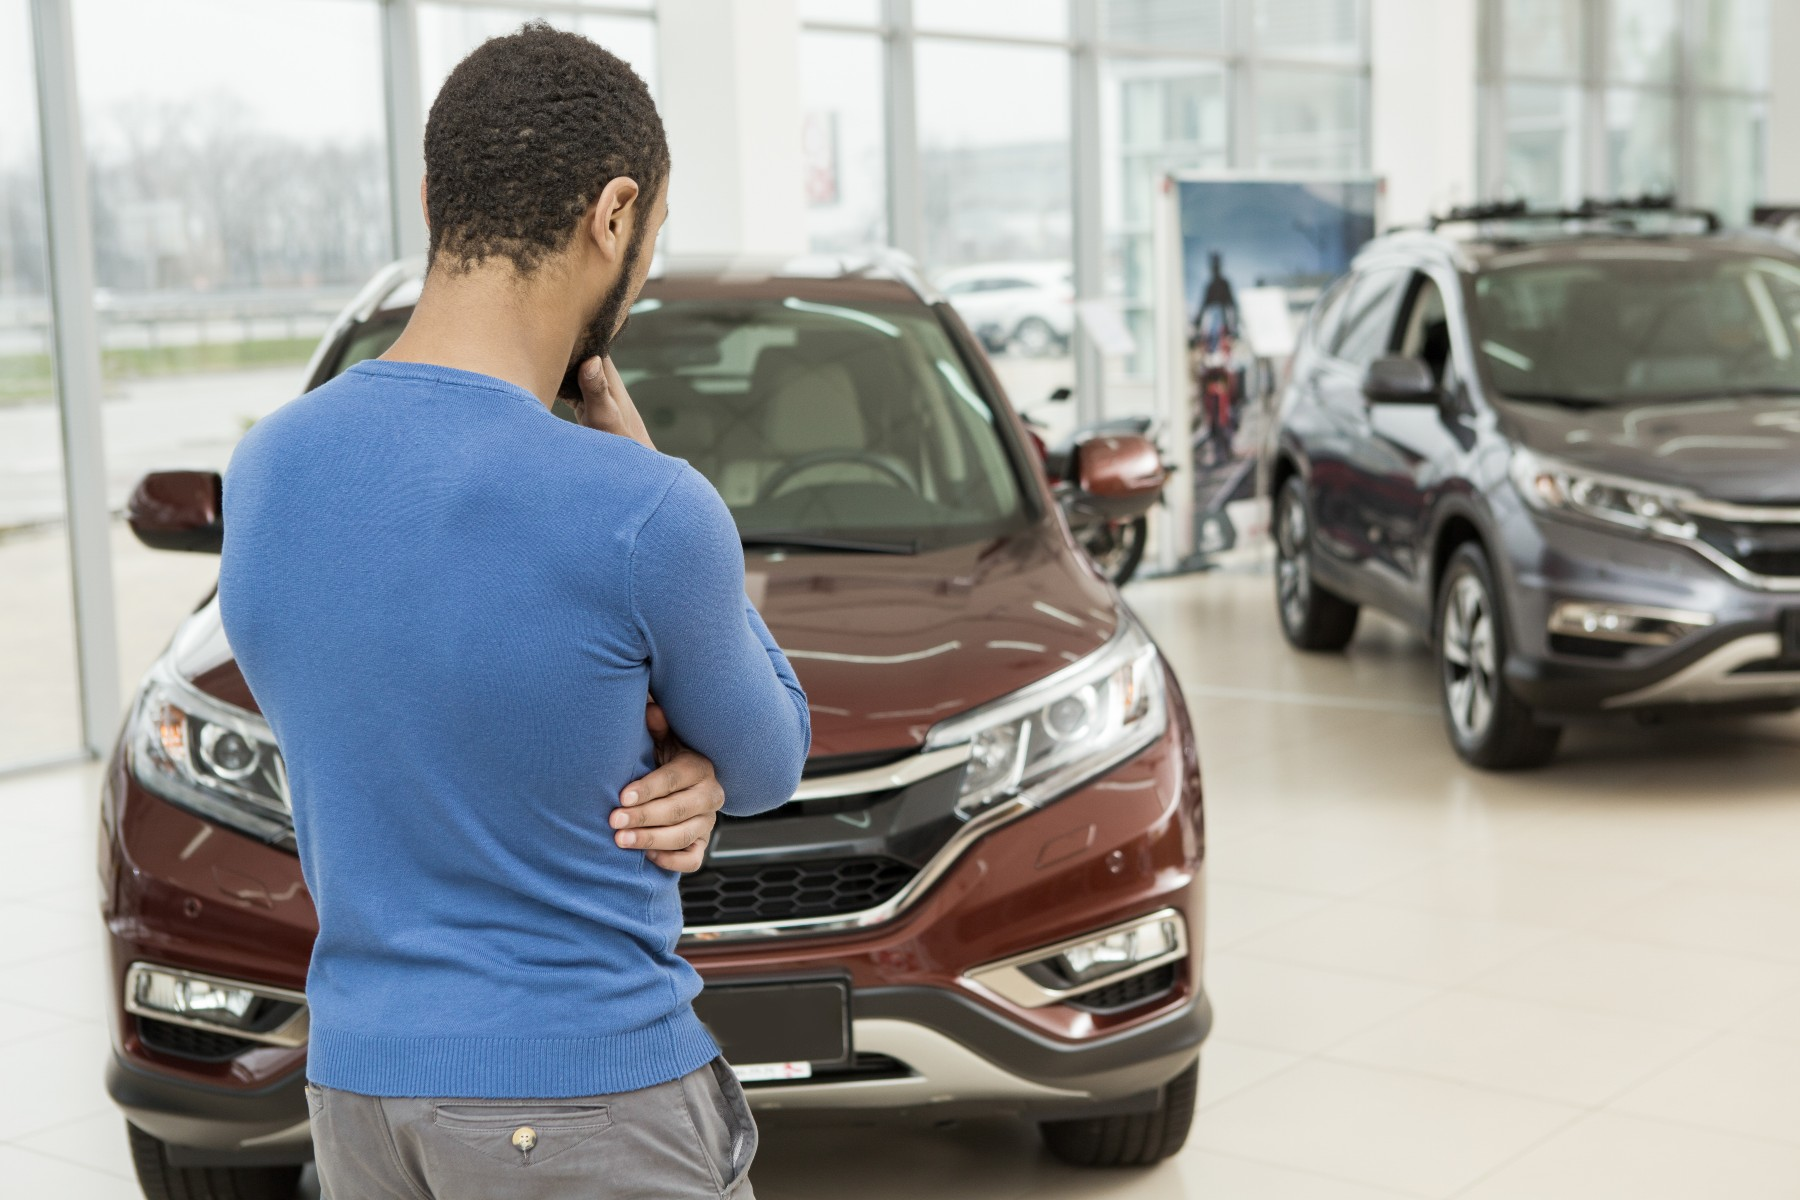 Man making decision on buying a car in Switzerland